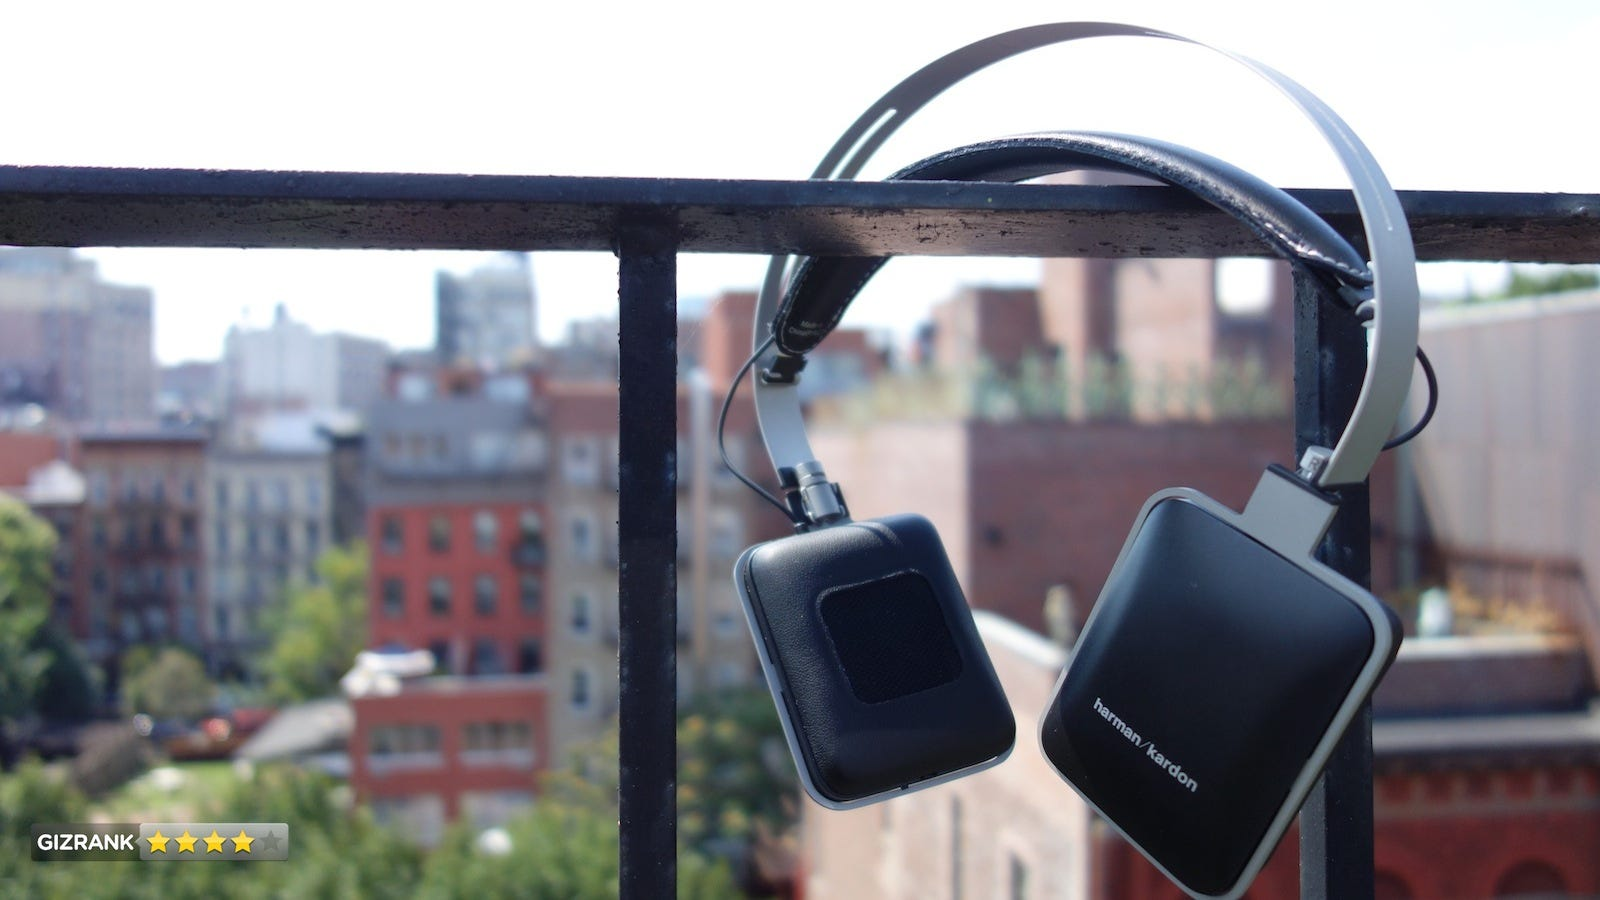 anker earbuds surge - Harman Kardon CL Review: These Headphones Can Handle All Your Listening Needs